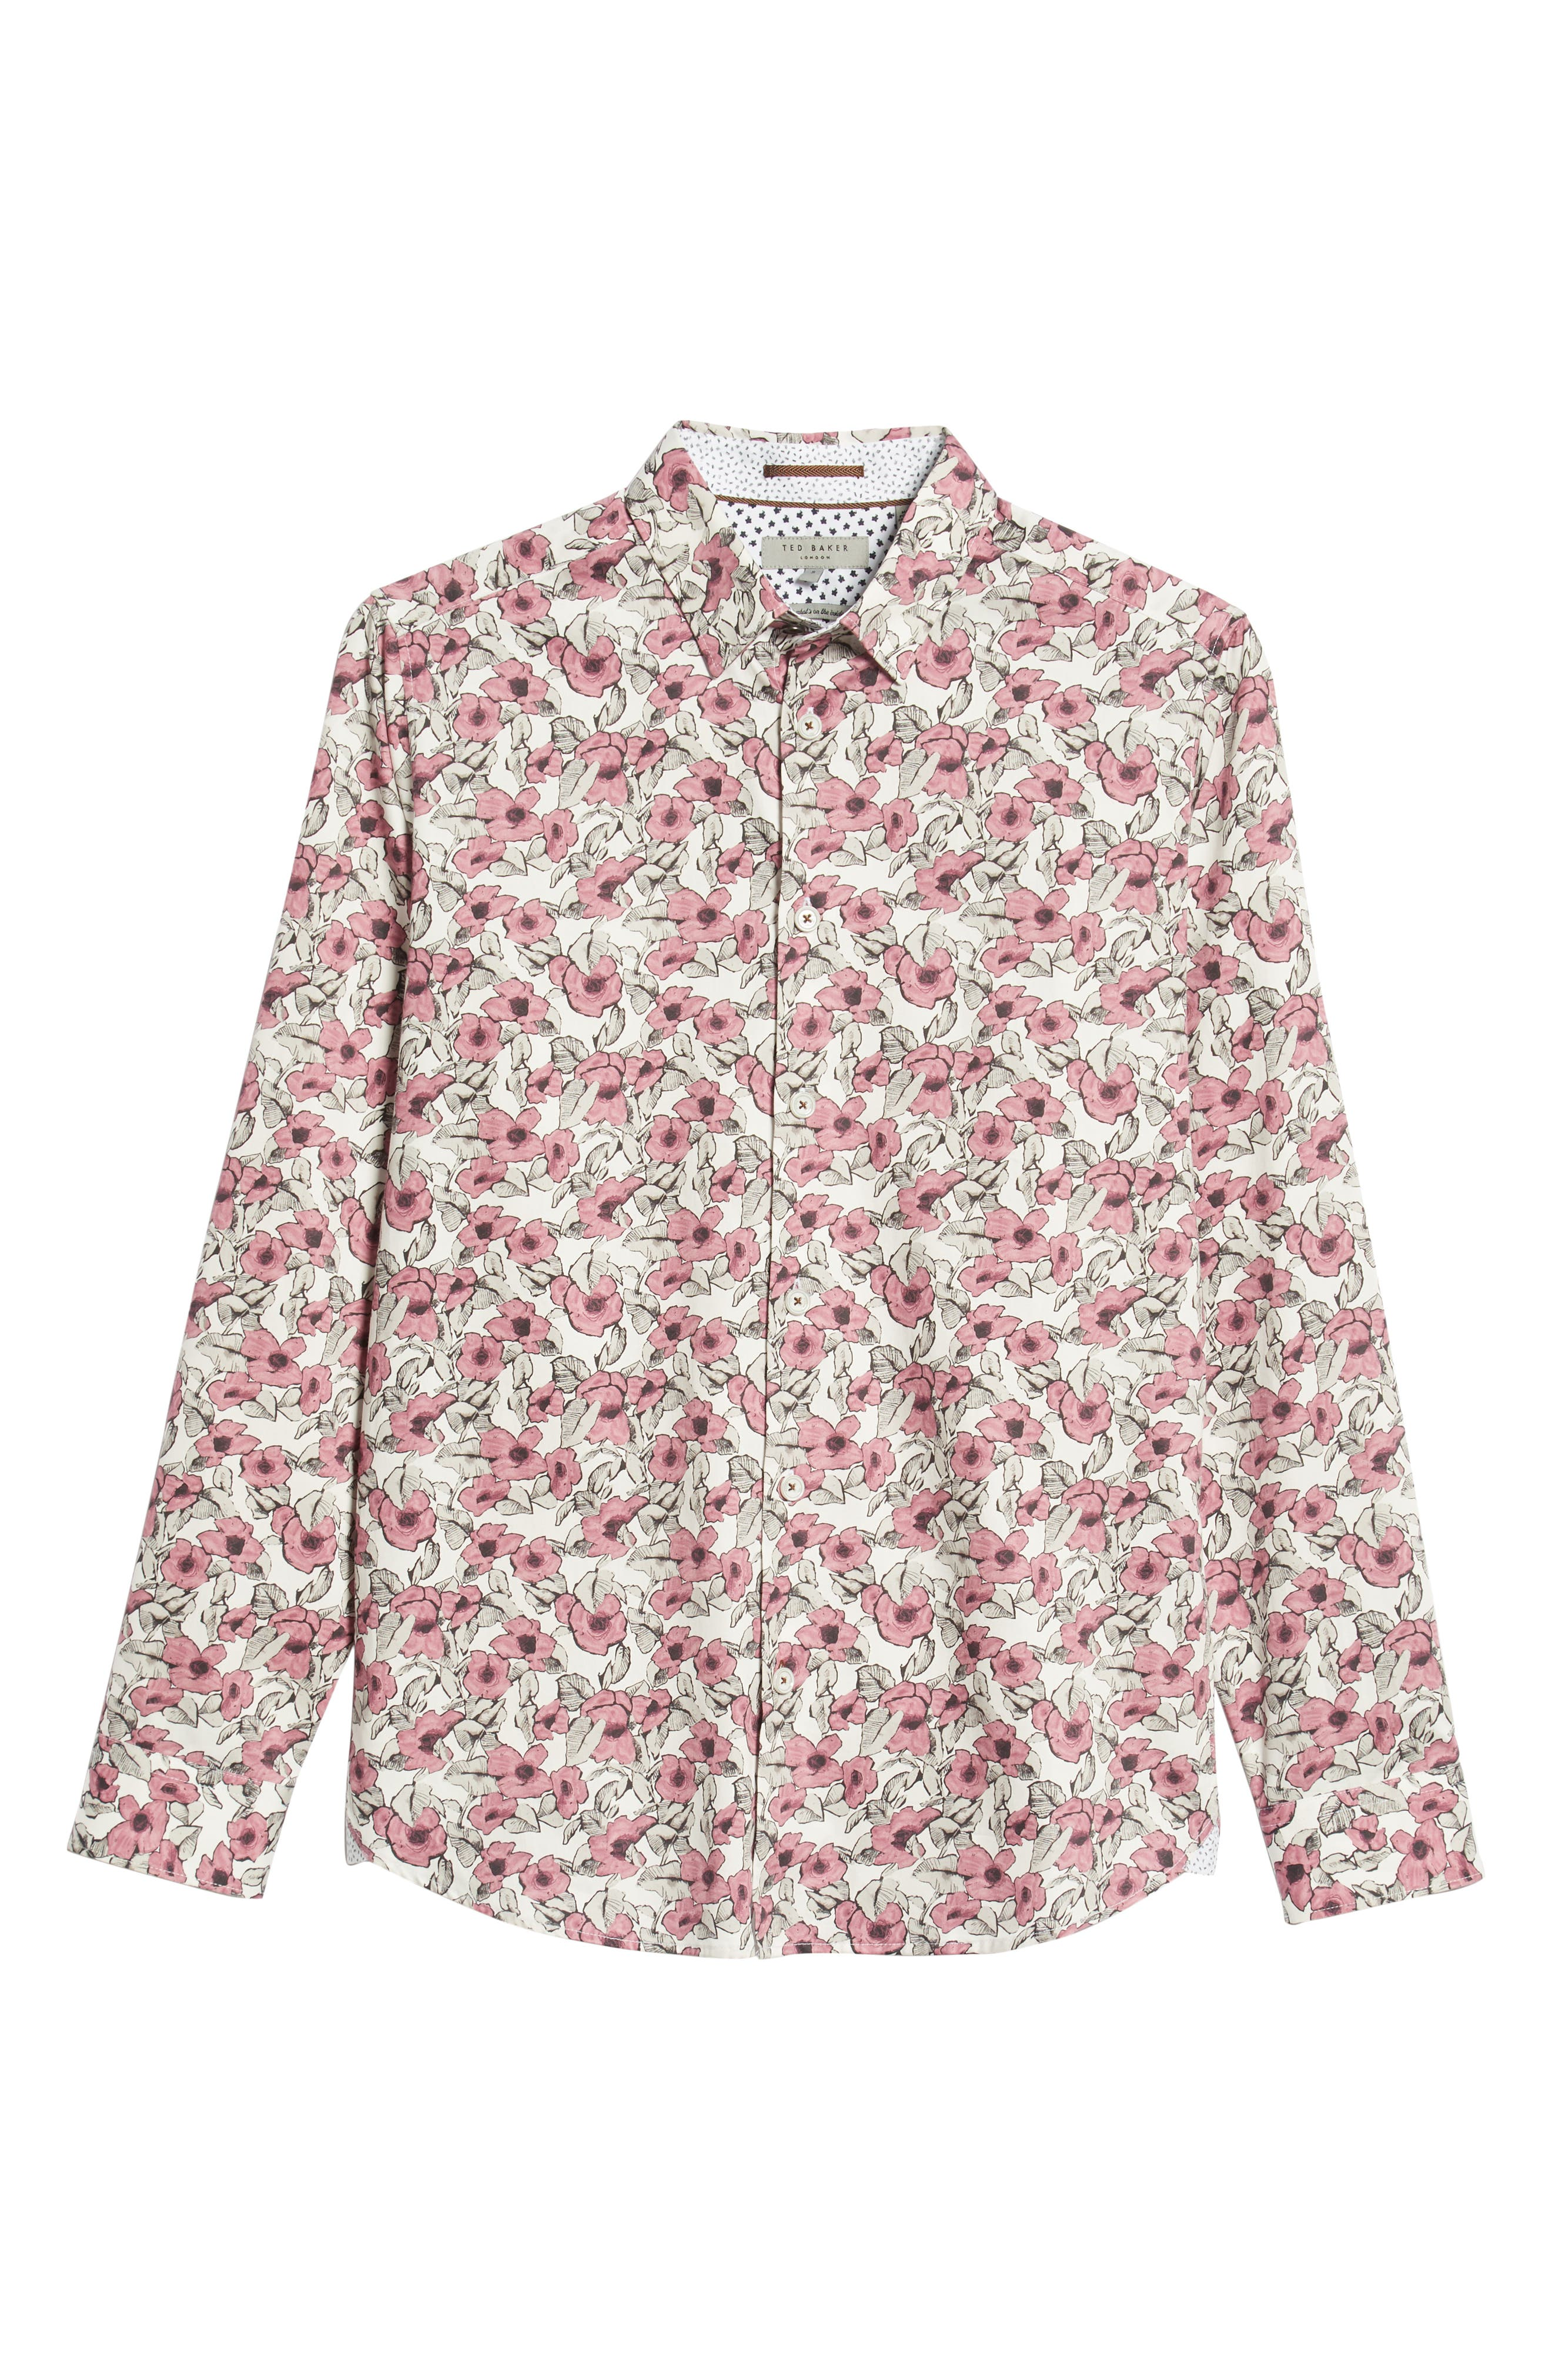 Croyden Slim Fit Floral Sport Shirt,                             Alternate thumbnail 5, color,                             PINK